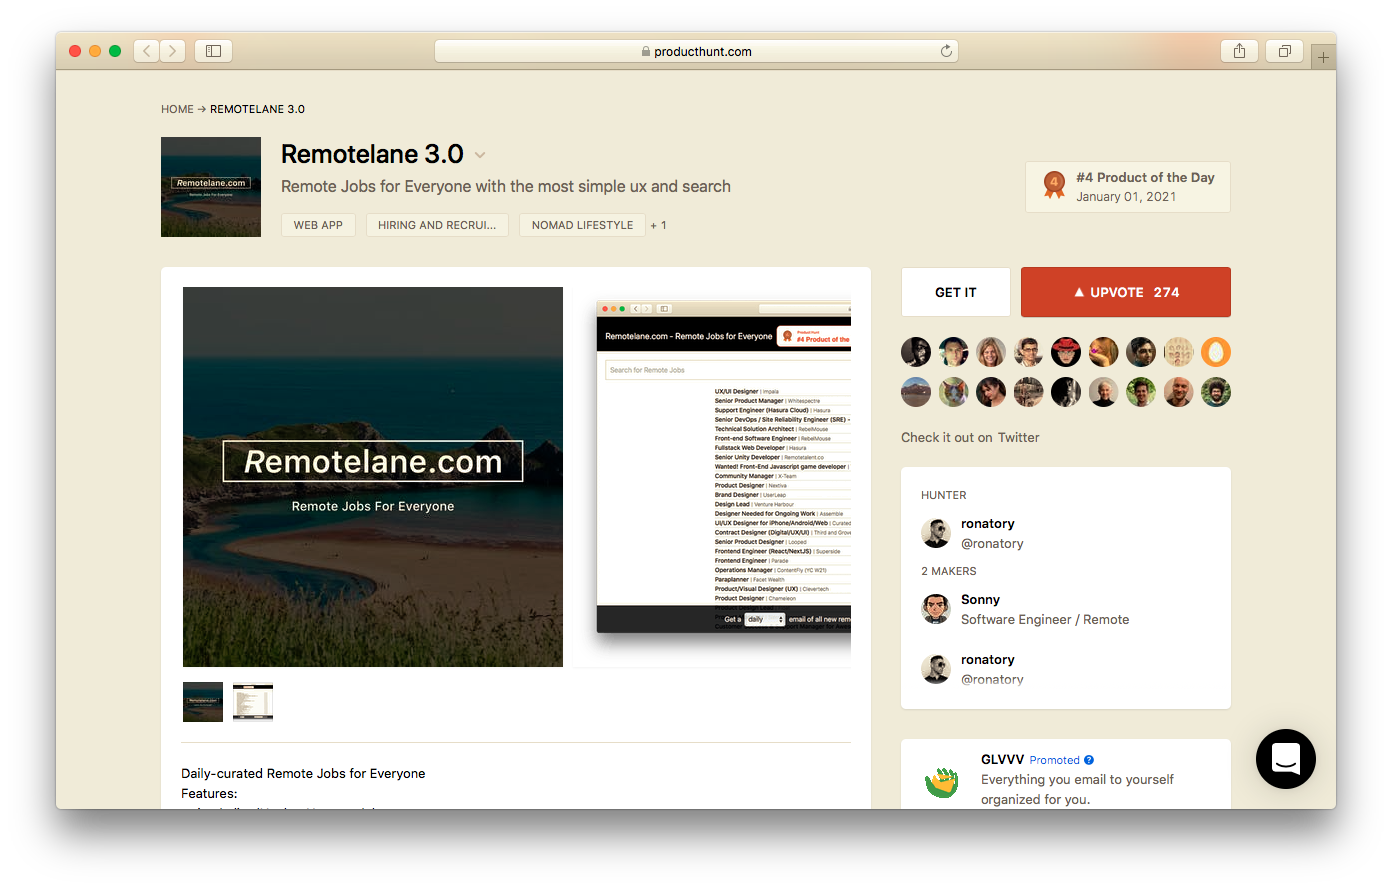 Remotelane.com featured on Product Hunt